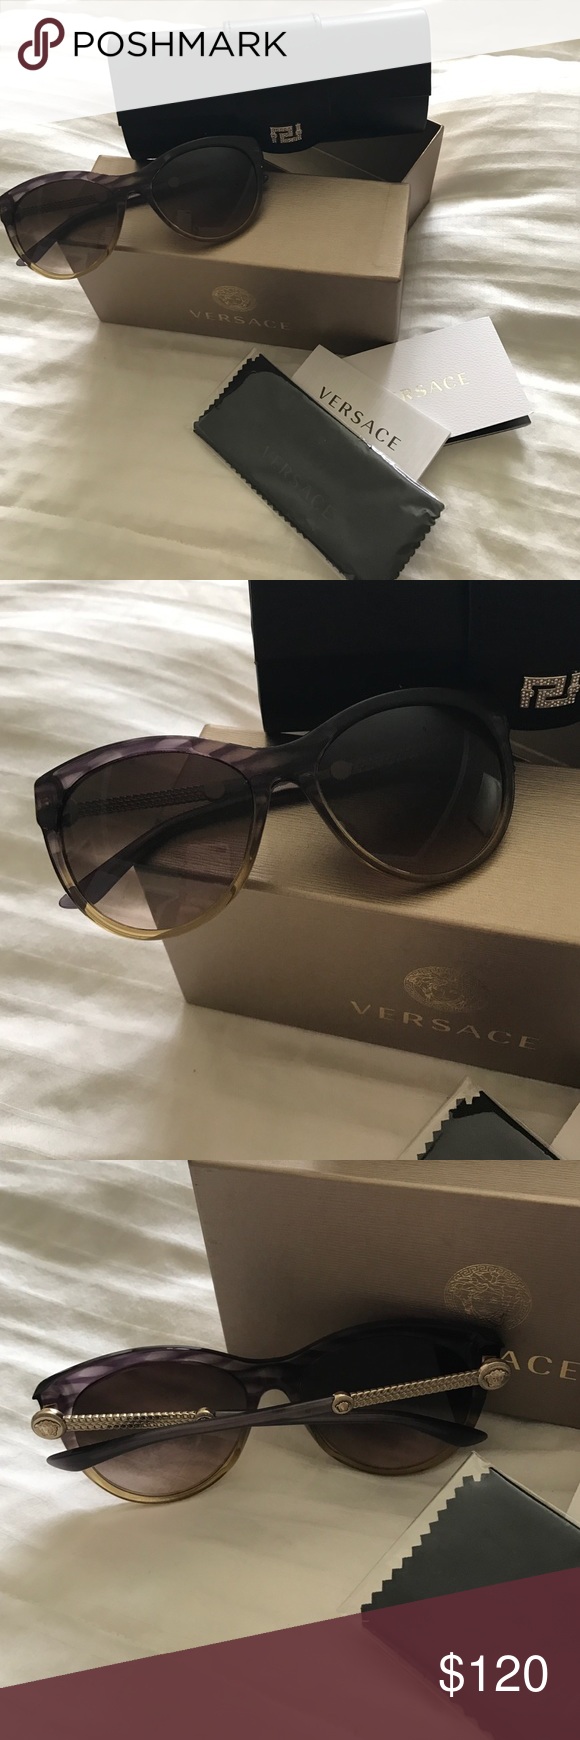 9b26639348 Authentic Versace sunglasses Women s authentic brand new Versace sunglasses.  I bought it at Macy s but don t want it anymore. Very nice sunglasses.